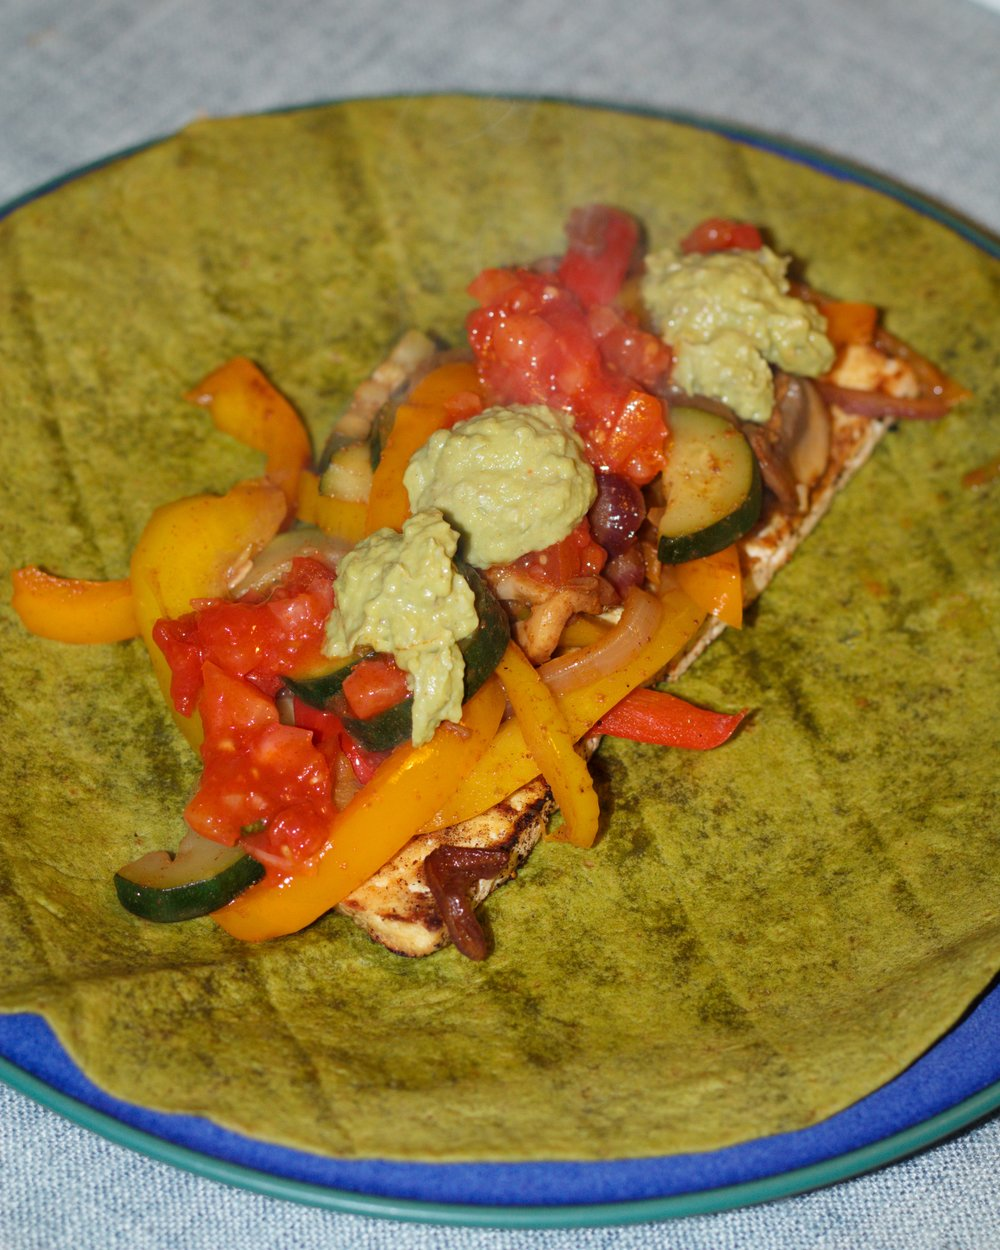 assembled fajita 1 (spinach wrap)